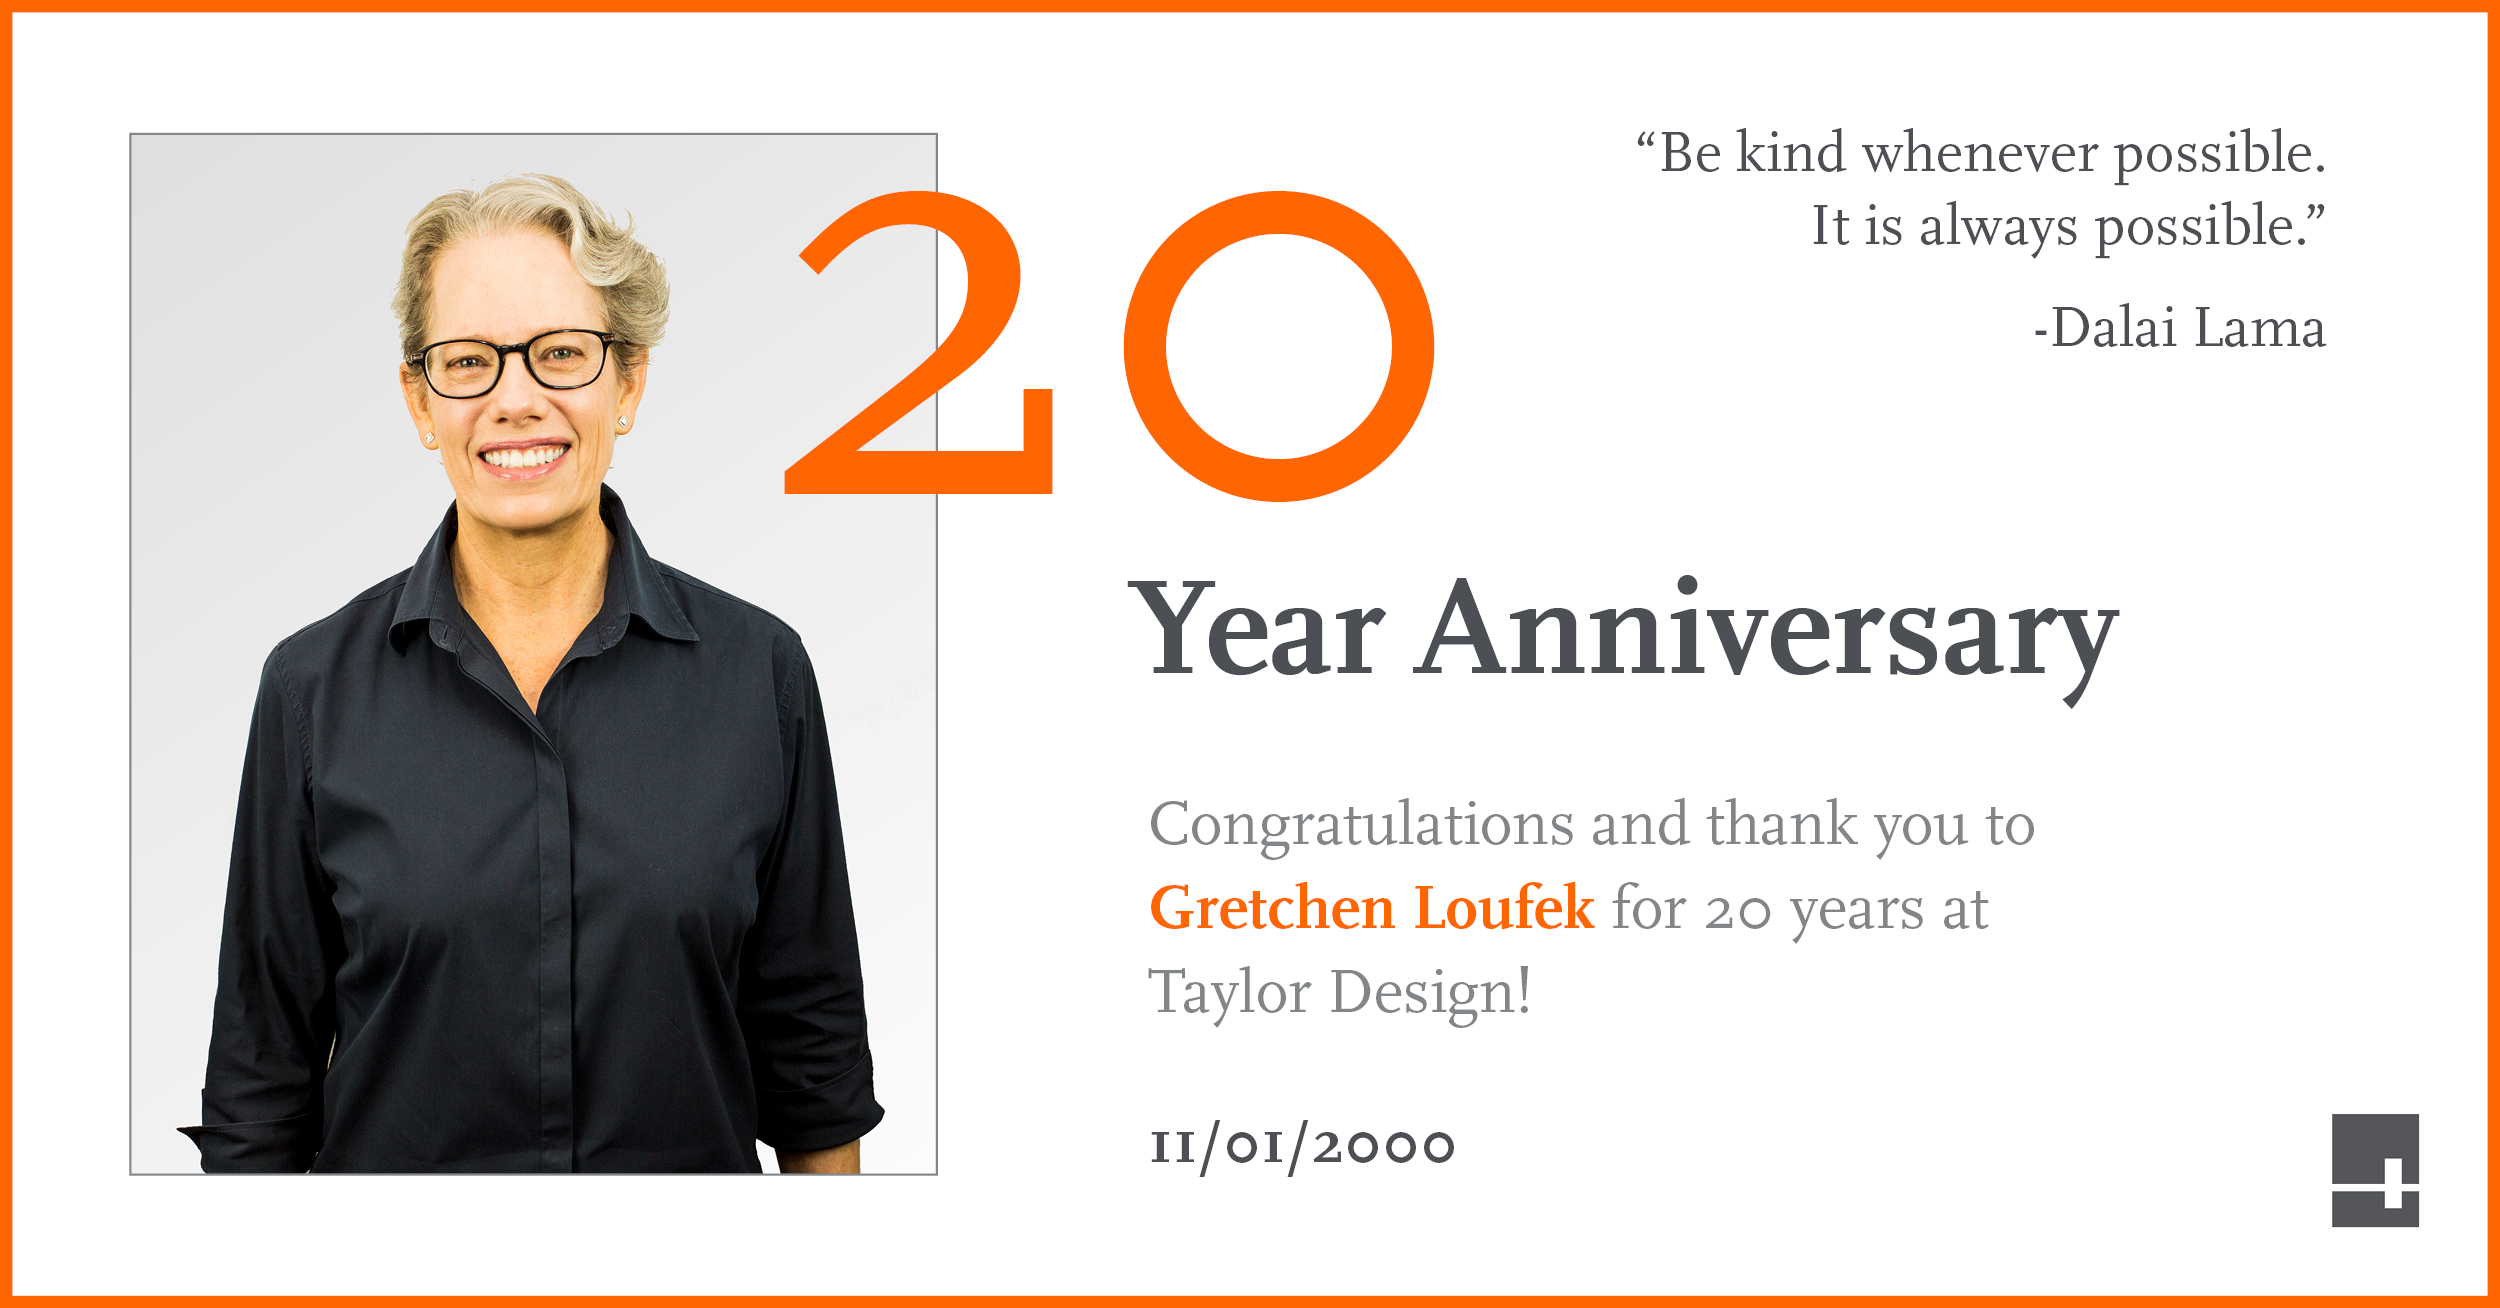 Gretchen Loufek celebrating 20 years at Taylor Design